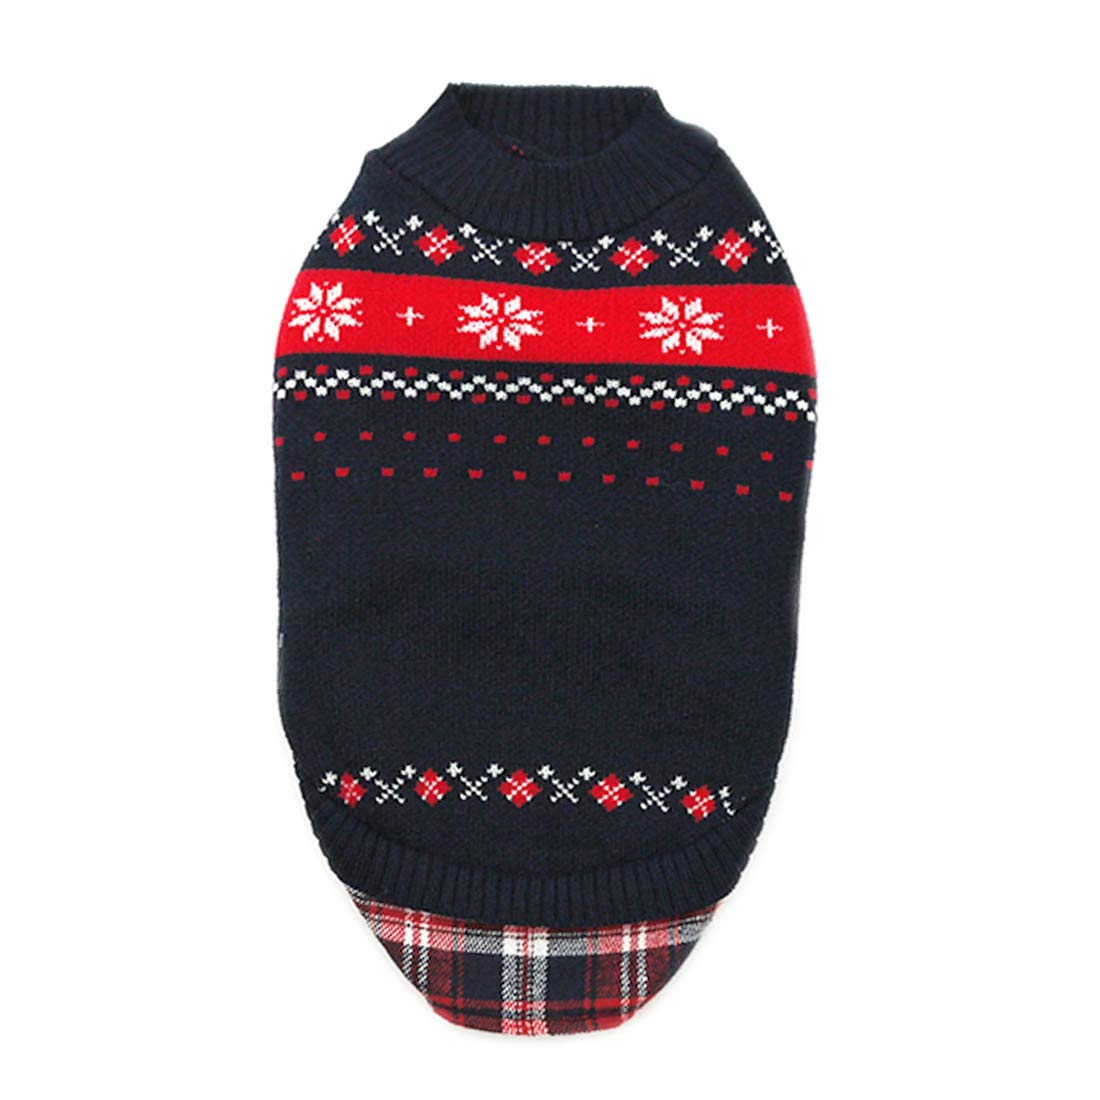 kyeese Dog Sweaters for Small Dogs with Leash Hole Dog Sweater Snowflake Pattern with Gingham Patchwork Knit Warm Pet Sweater